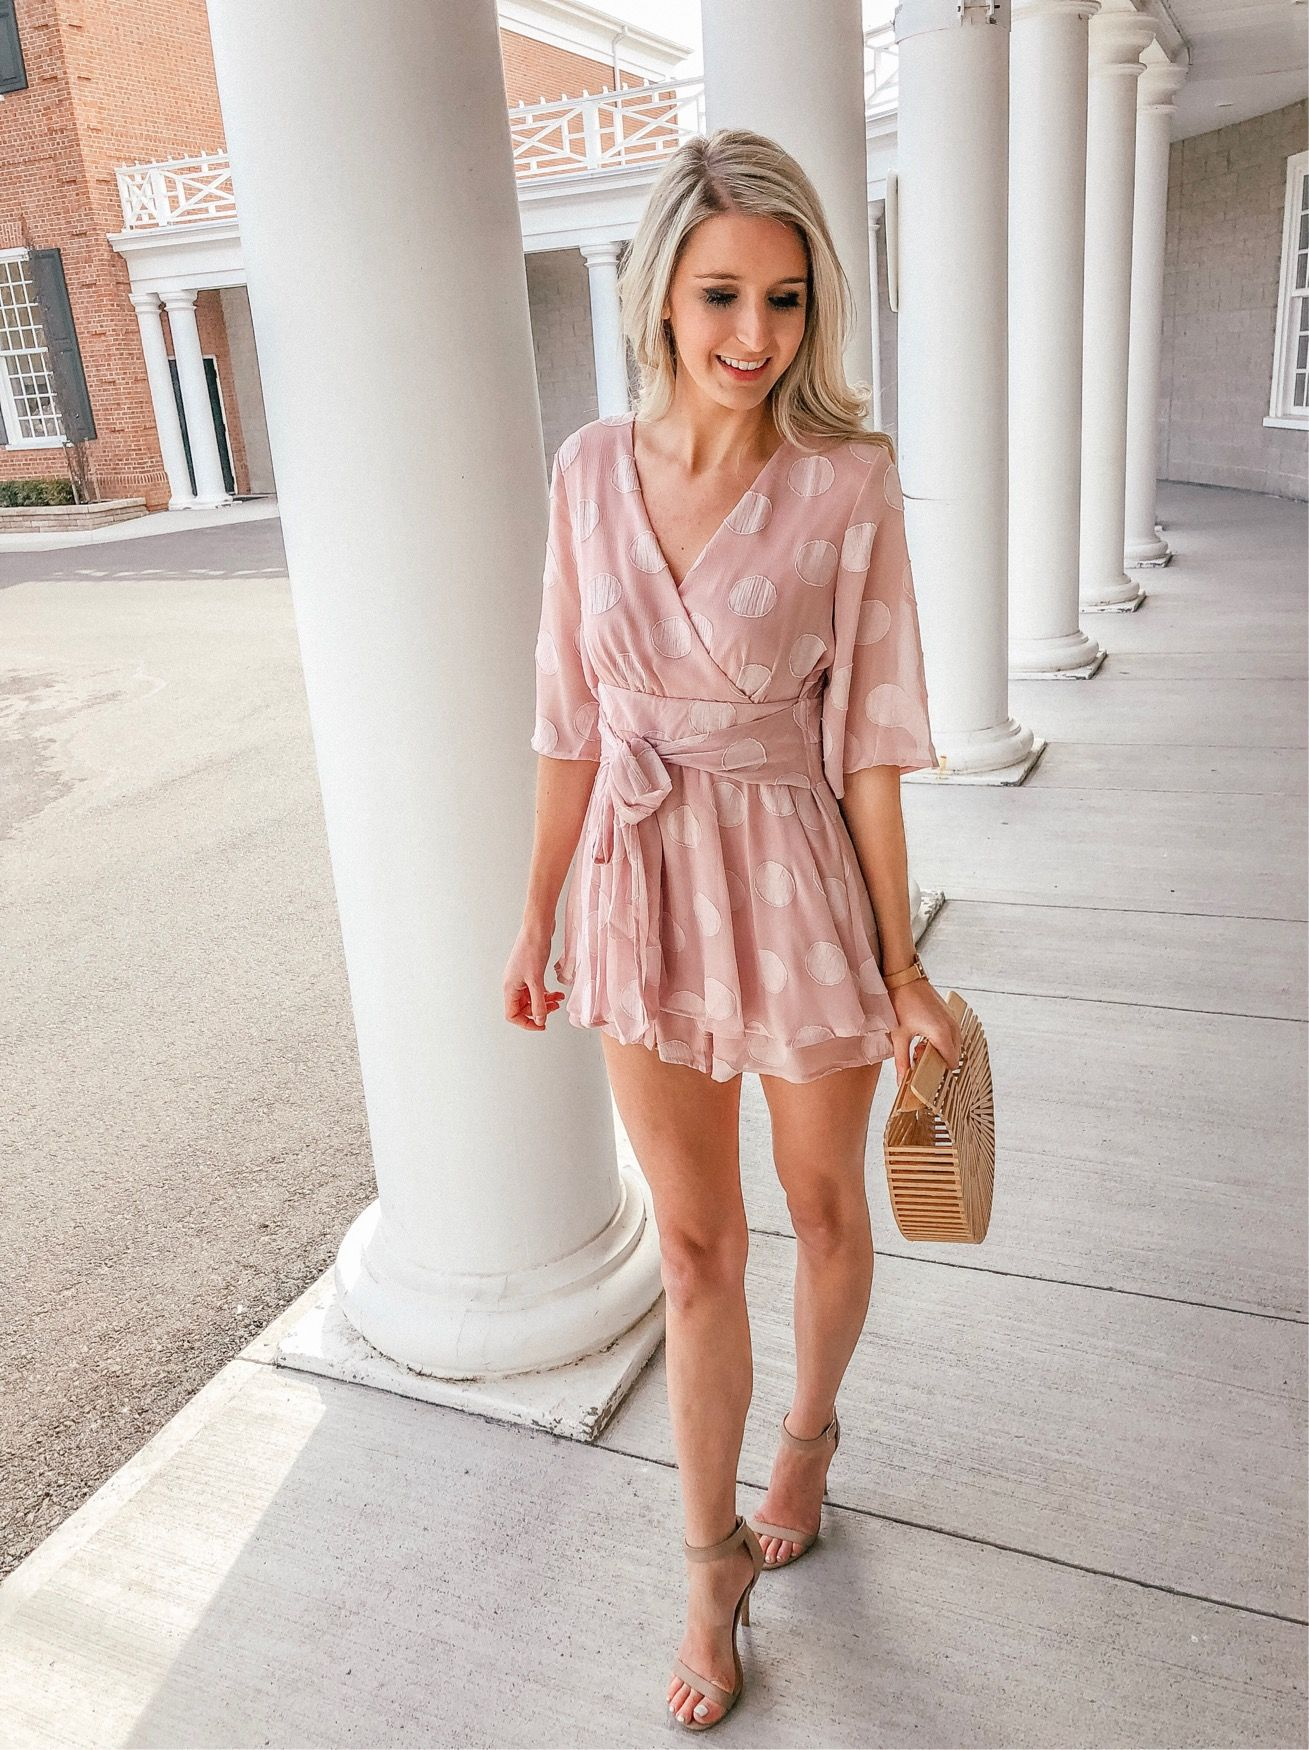 Instagram Roundup Prada Pearls Spring Dresses Classy Fashion Summer Romper Outfit [ 1750 x 1309 Pixel ]